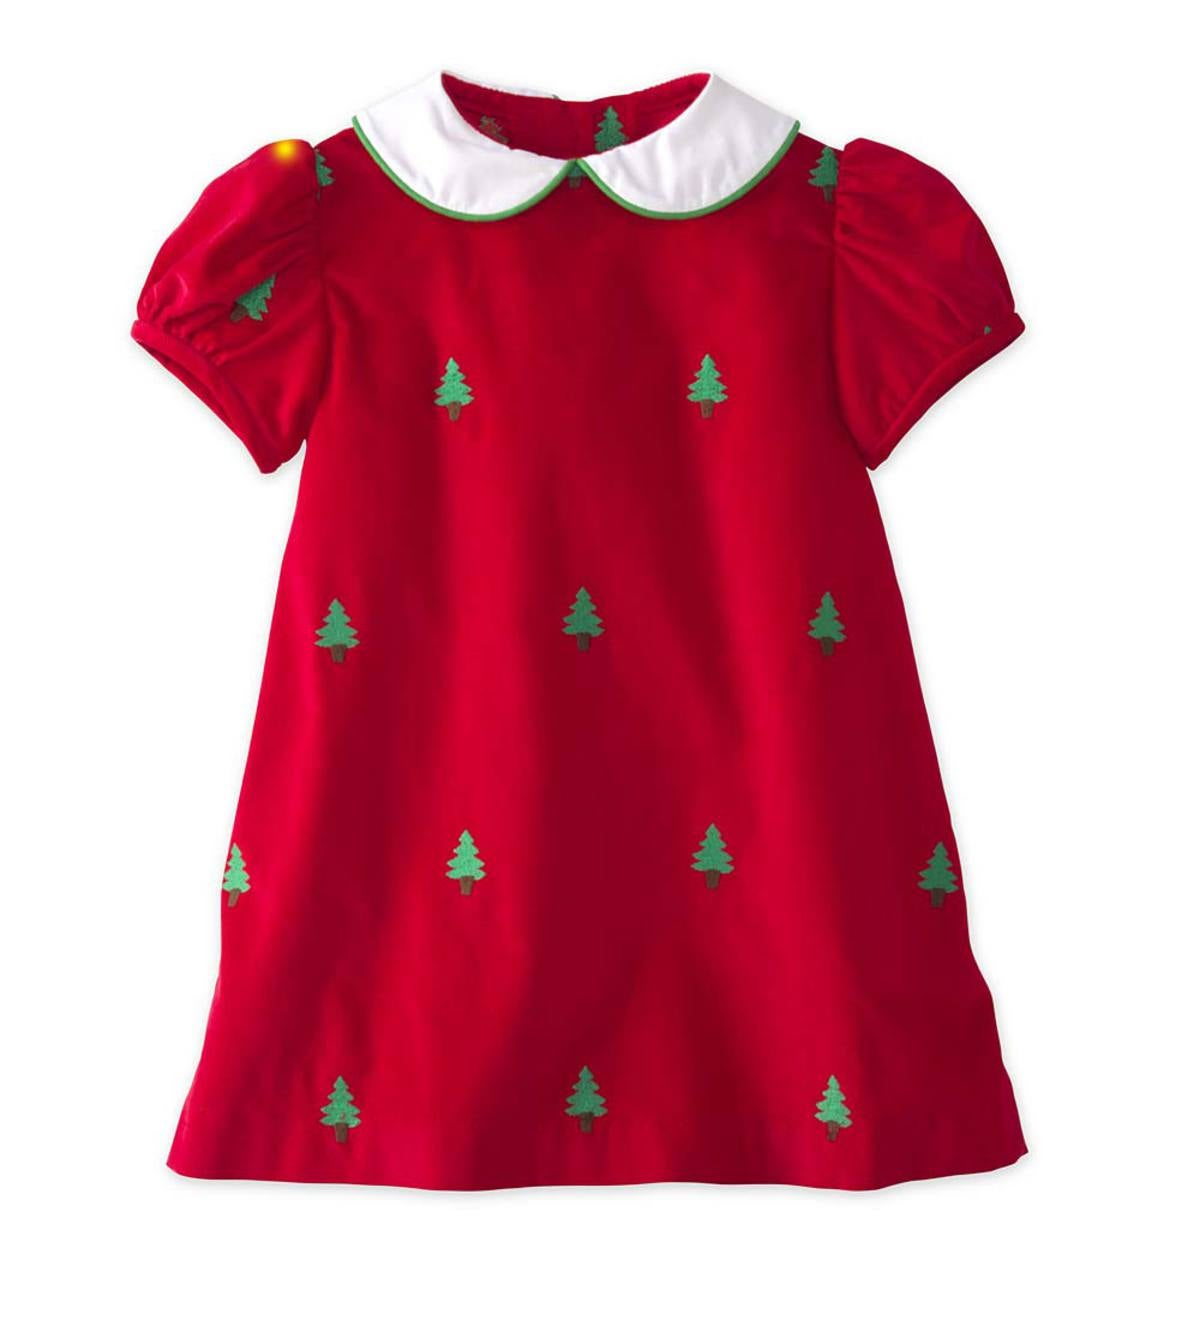 Embroidered Tree Dress - Red - 24M